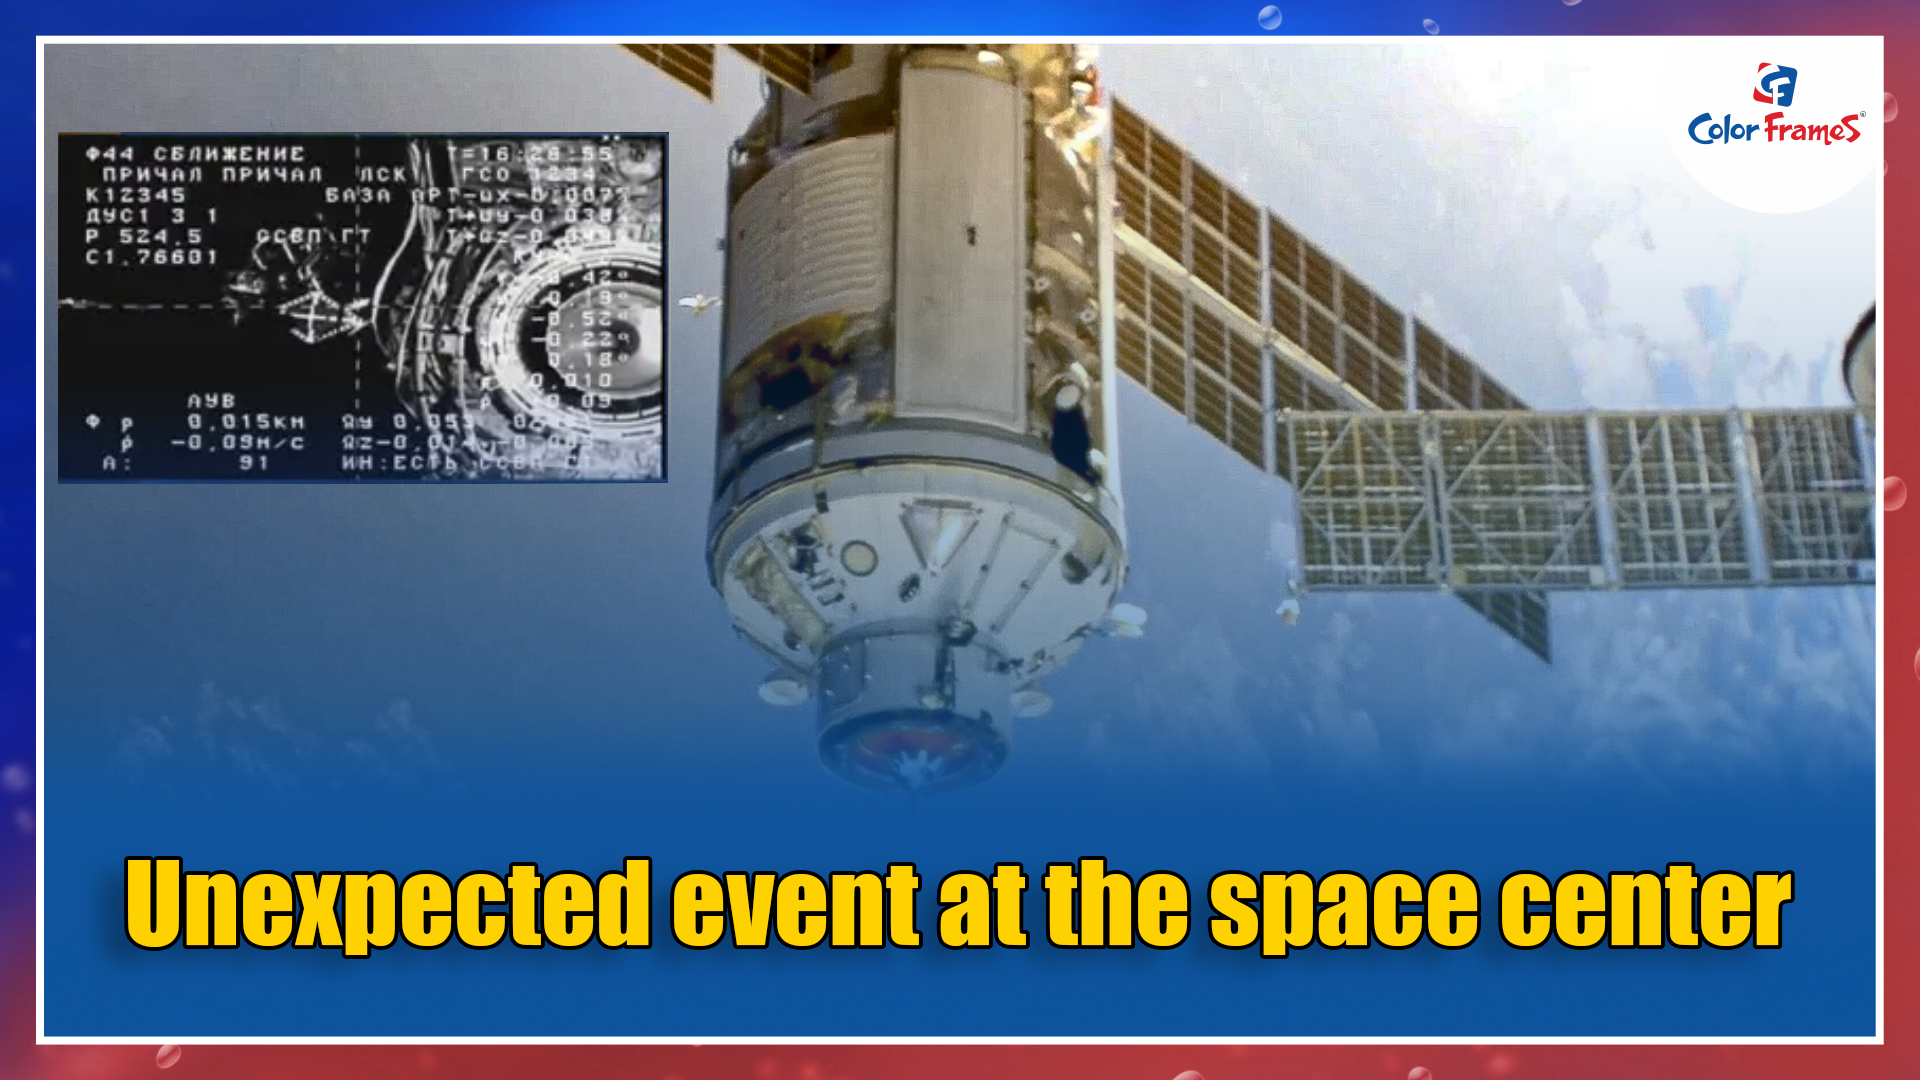 Unexpected event at the space center